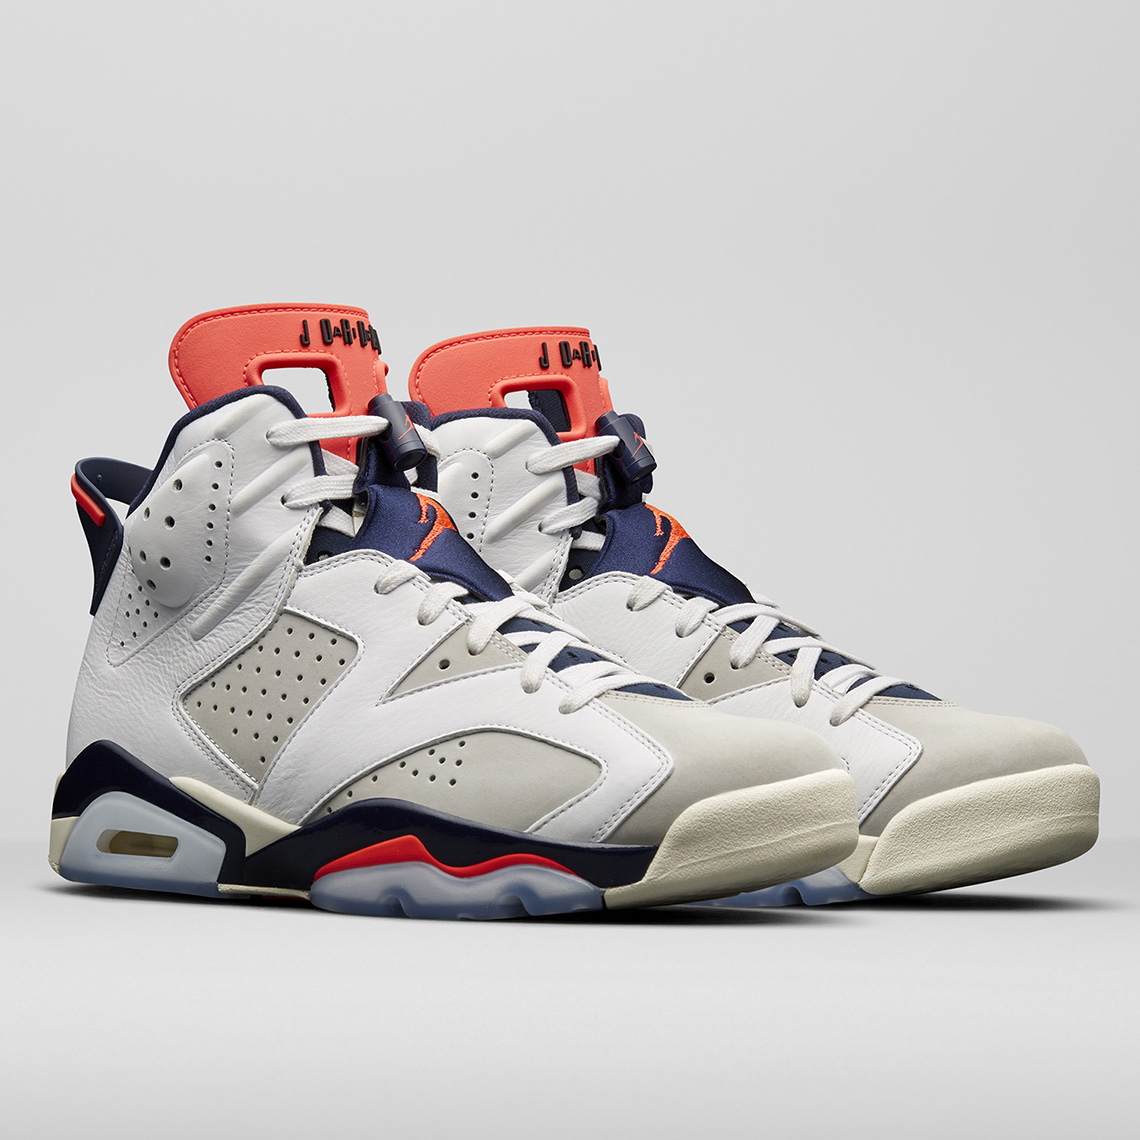 sale retailer 7c1a3 85a1d ... color white concord black style code 378037 100 2888a d1a38  discount  code for air jordan 6 tinker air jordan 6 tinker store list release date  october